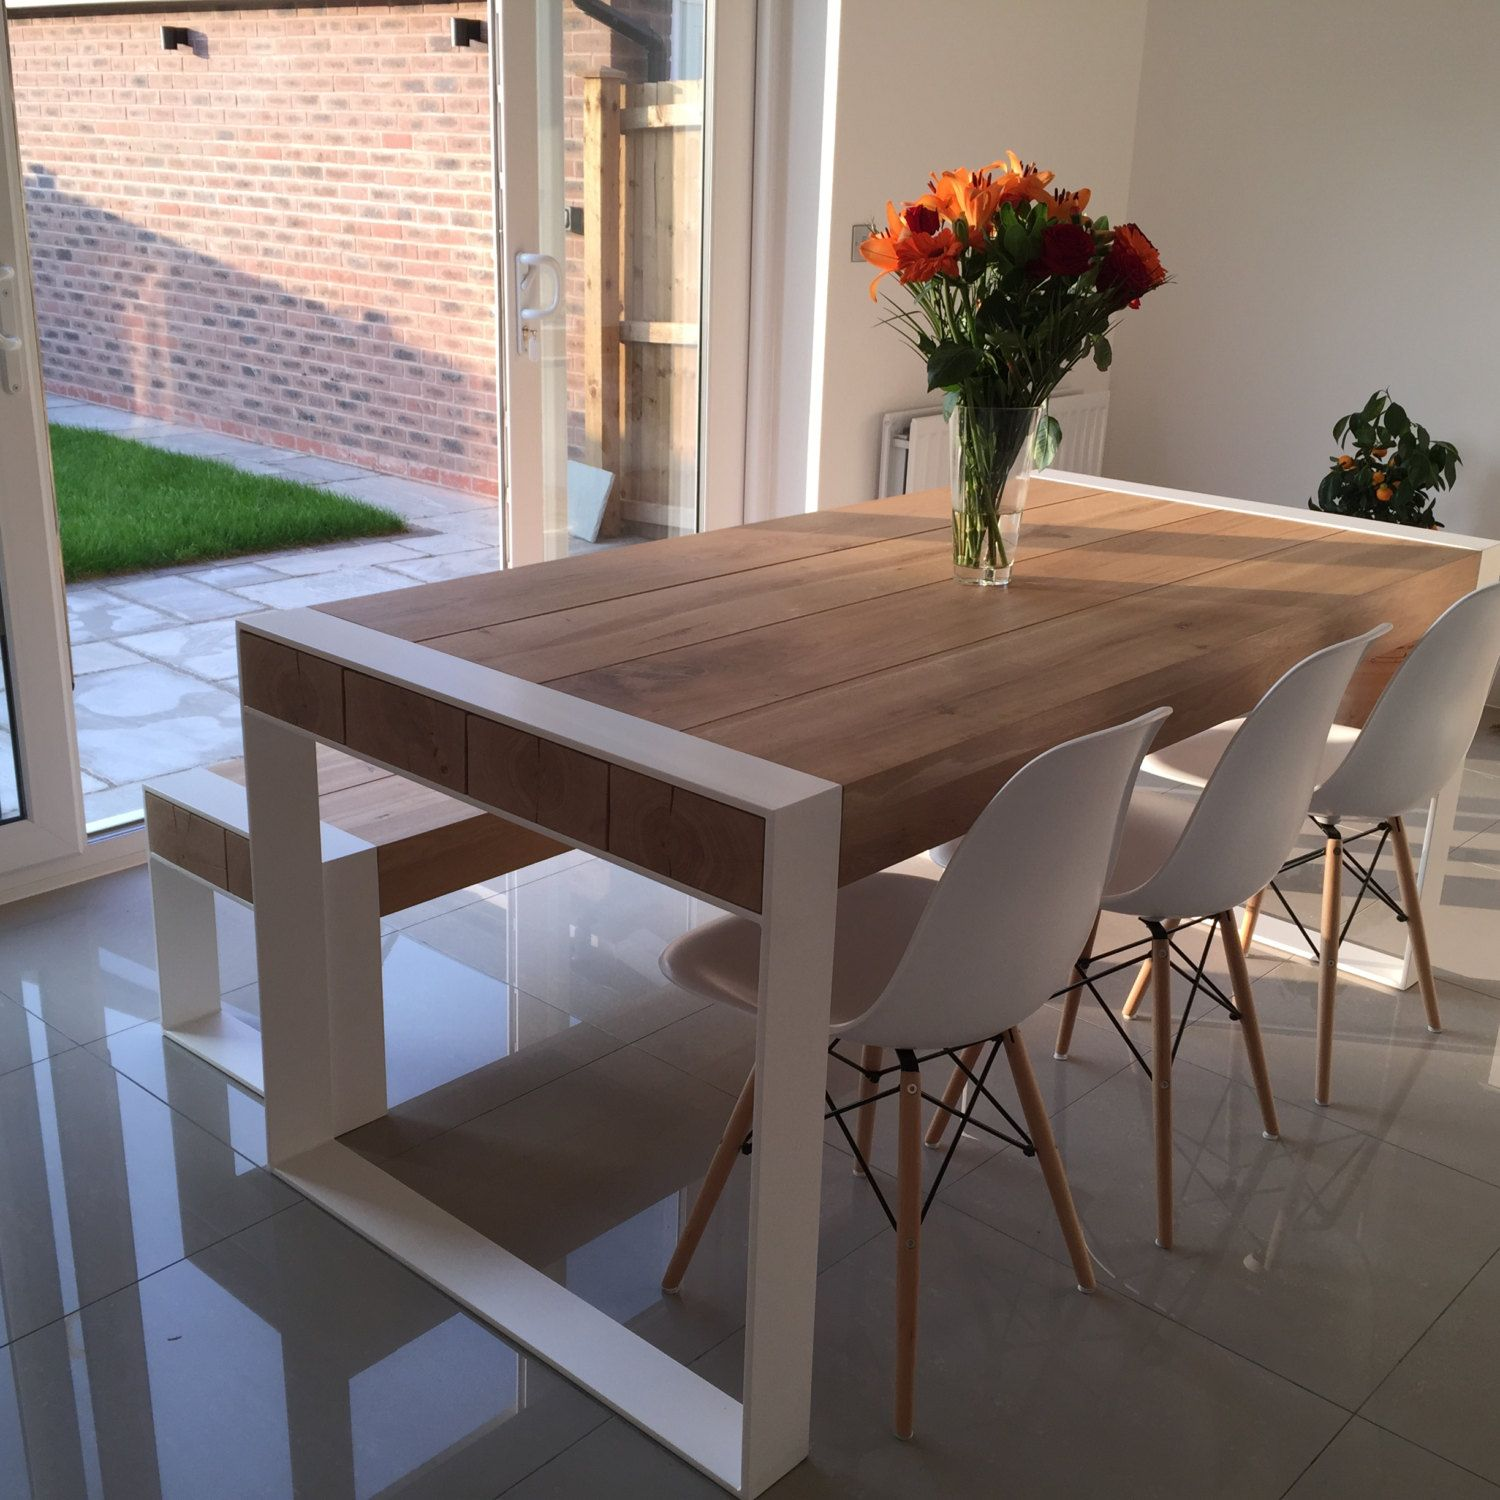 Handmade dining set - steel & timber table with benches | Lackieren ...